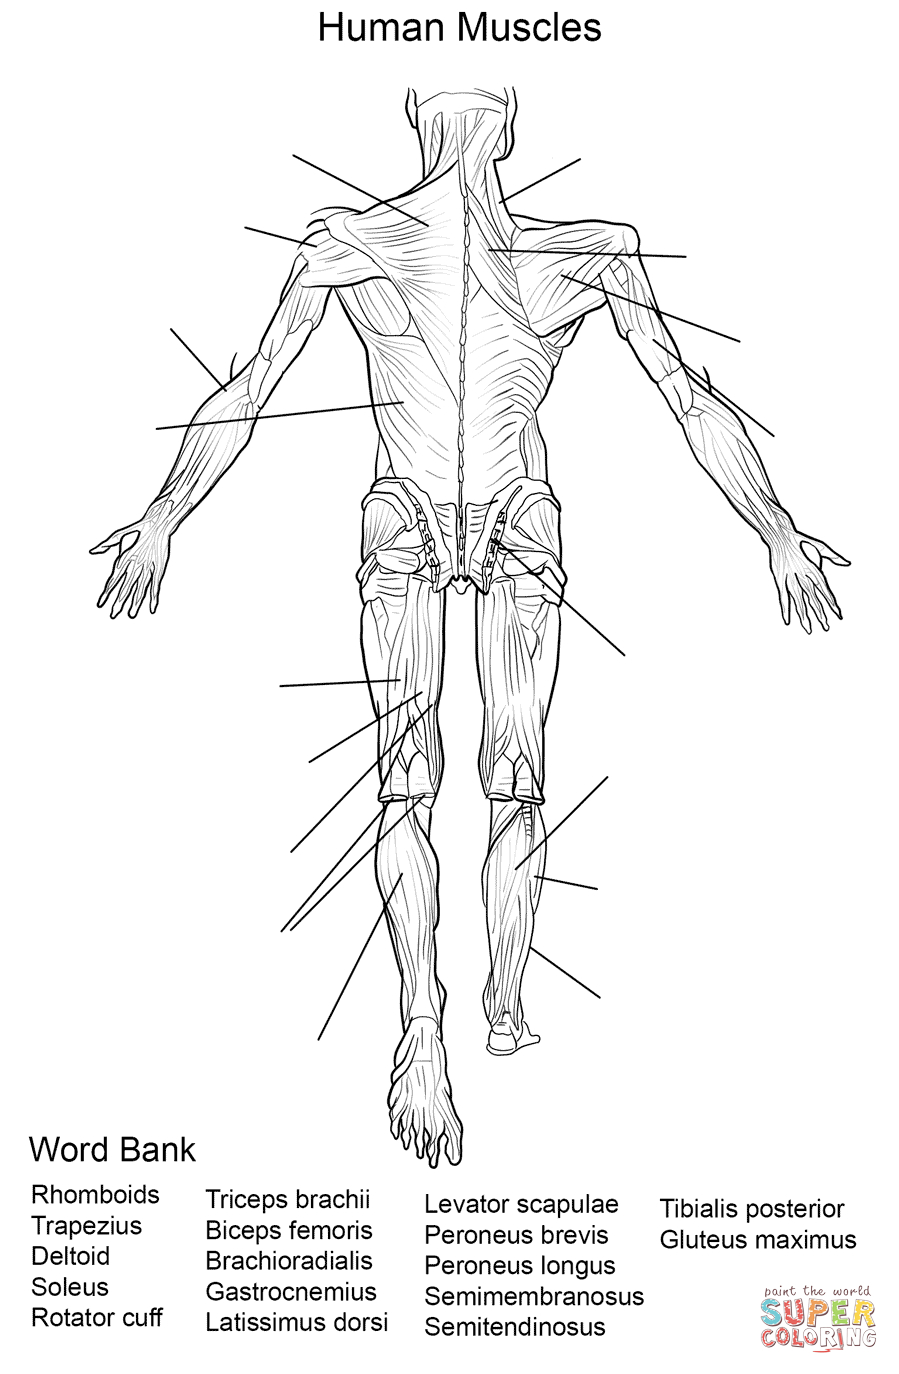 Human Muscles Back View Worksheet Coloring Page | Free Printable | Free Printable Human Anatomy Worksheets